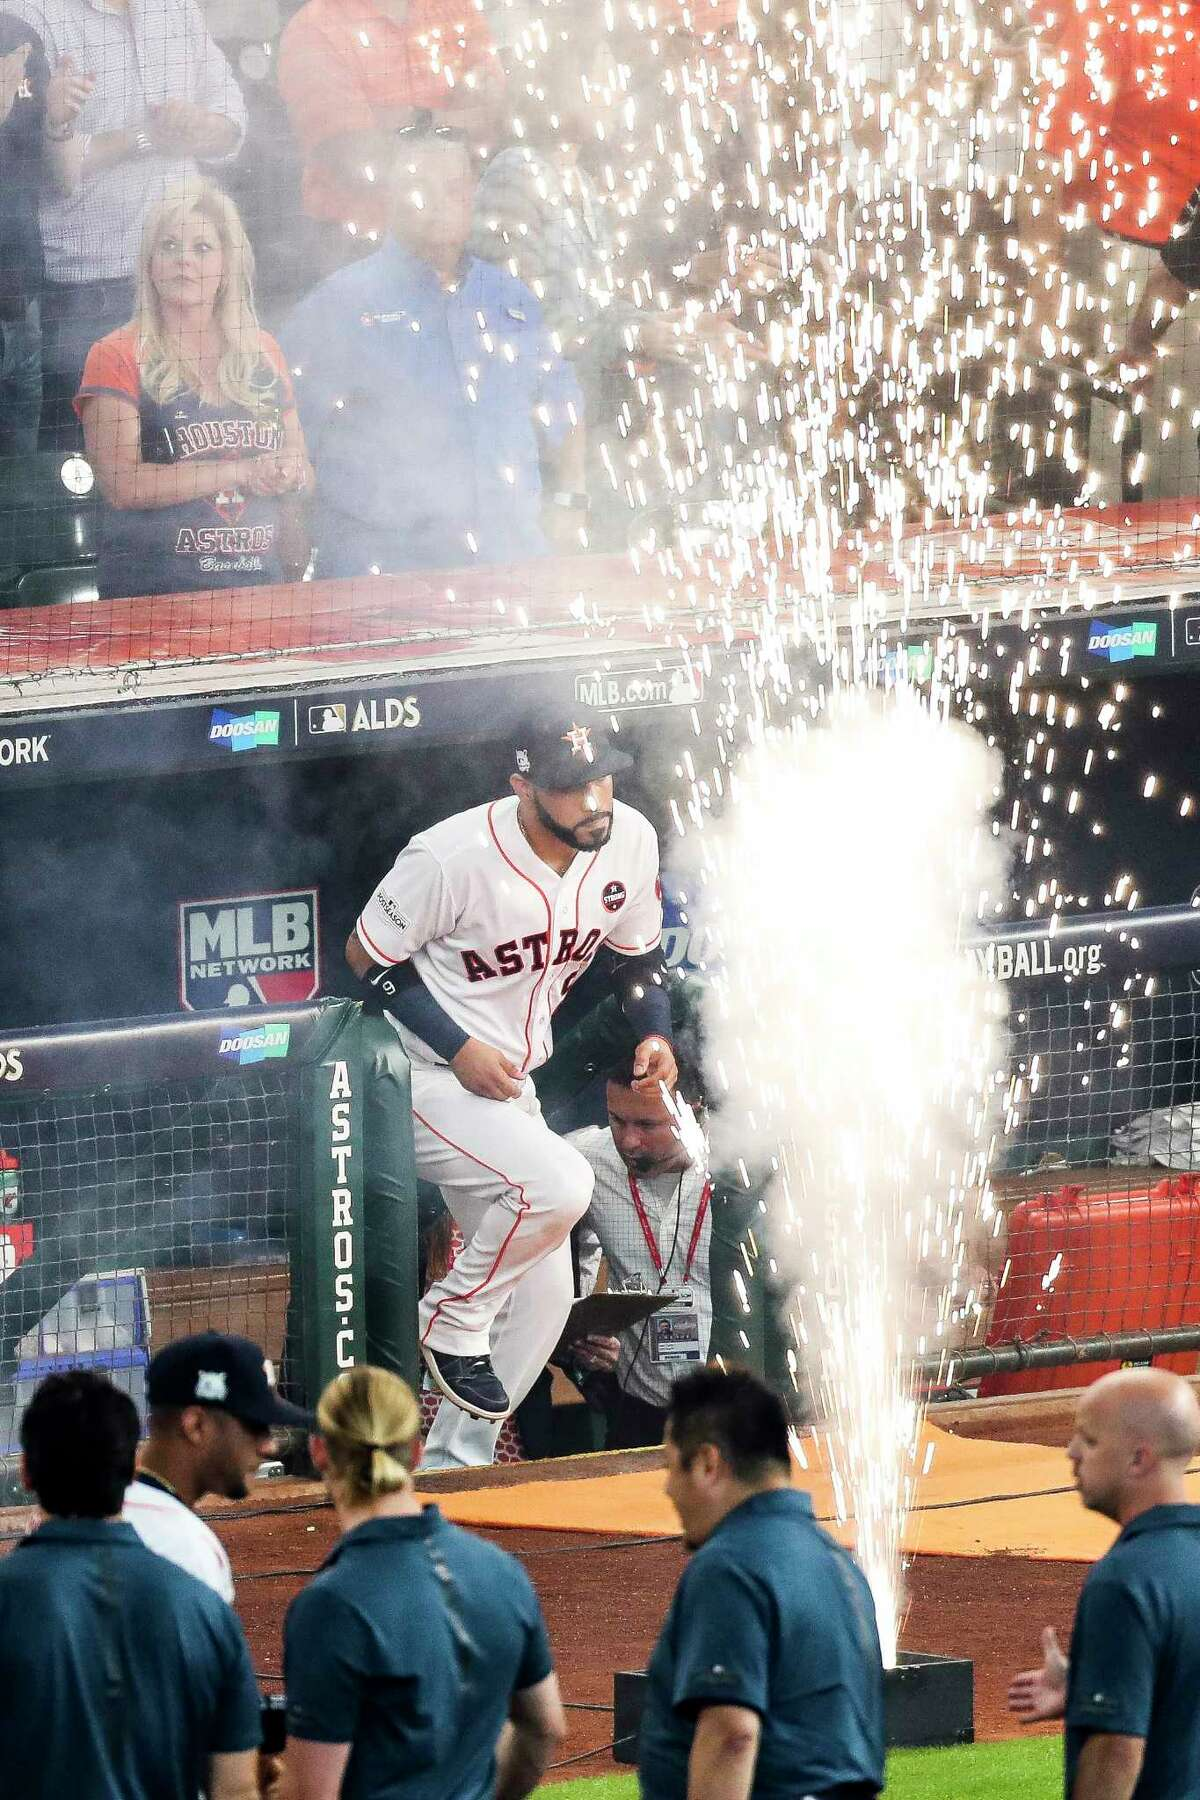 Houston Astros left fielder Marwin Gonzalez runs onto the field before the Houston Astros take on the Boston Red Sox during the first game of the American League Divisional Series at Minute Maid Park Thursday, Oct. 5, 2017 in Houston.